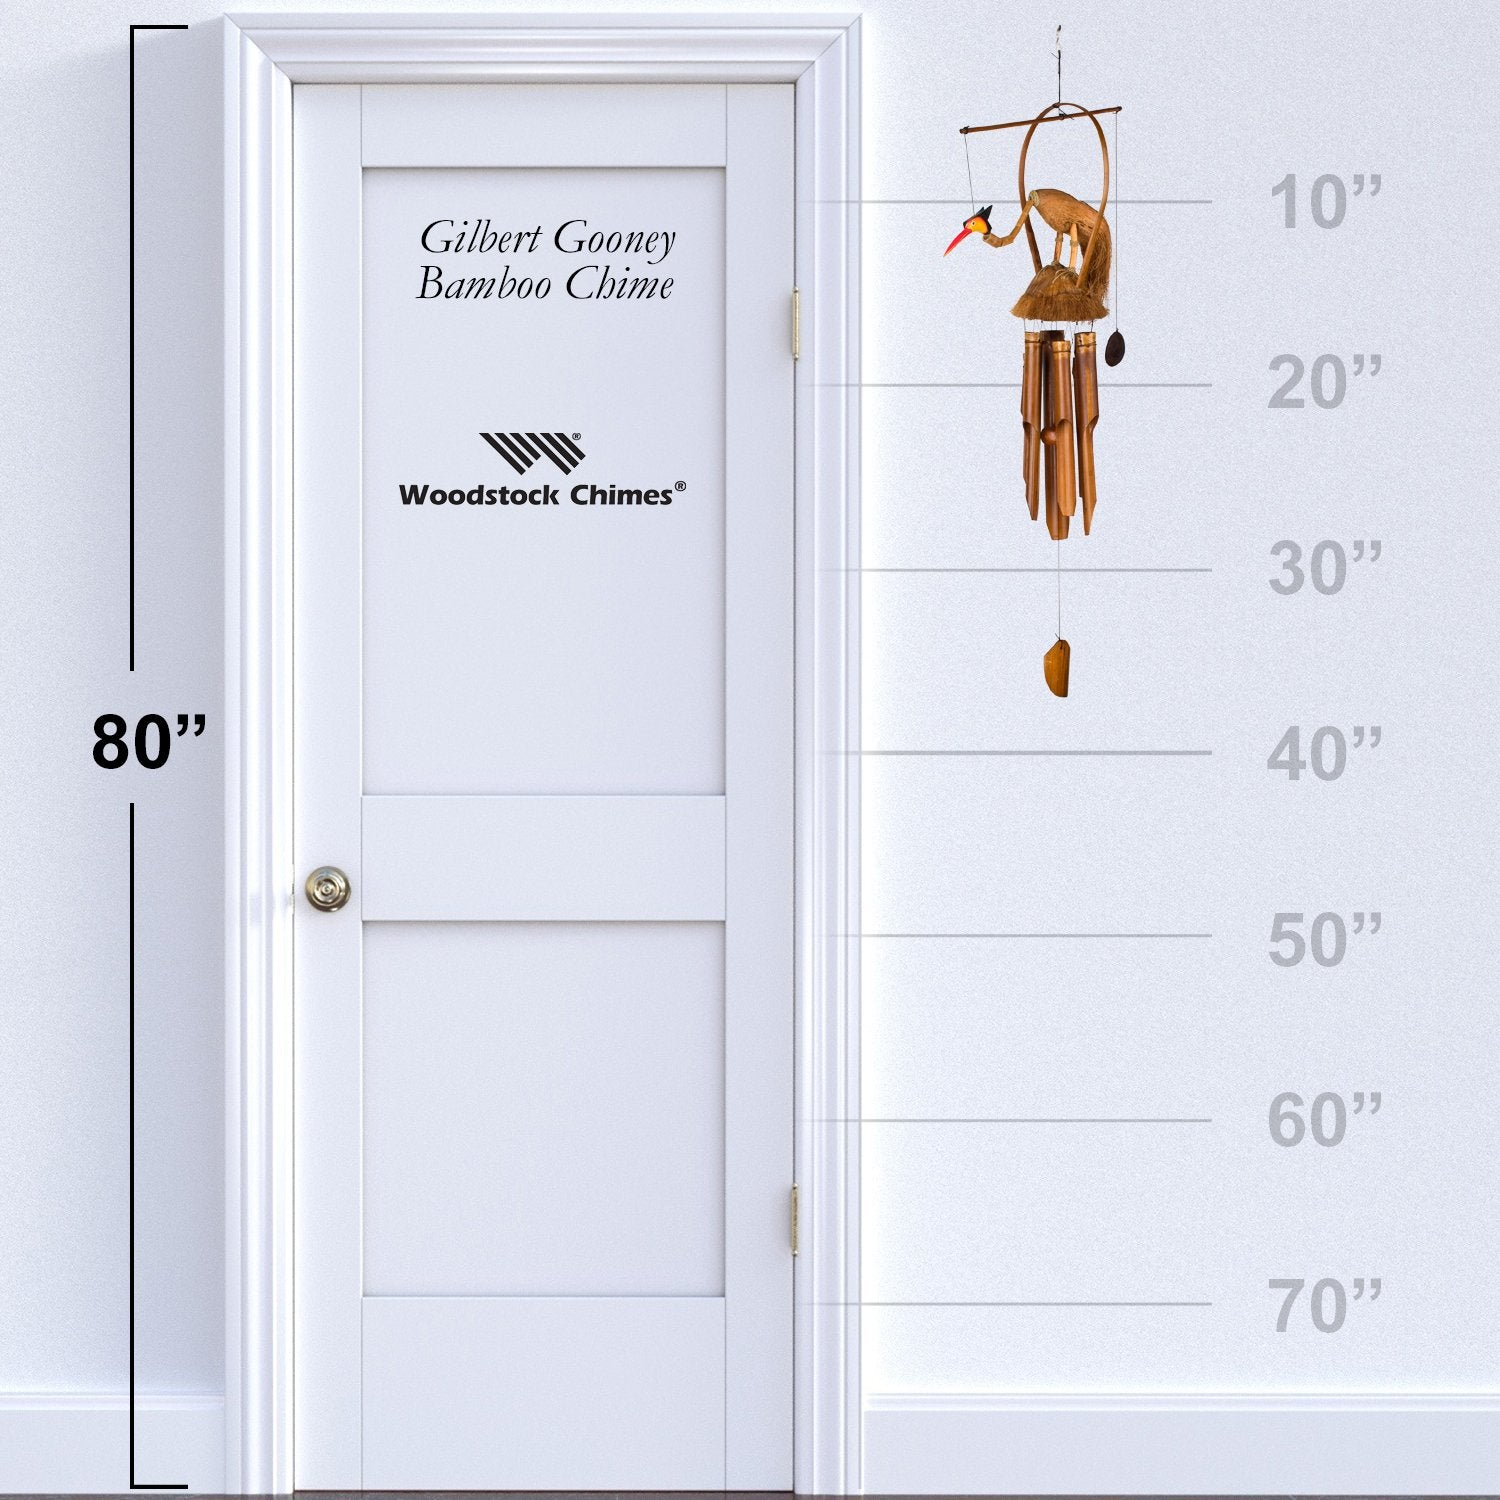 Gilbert Gooney Bamboo Chime proportion image